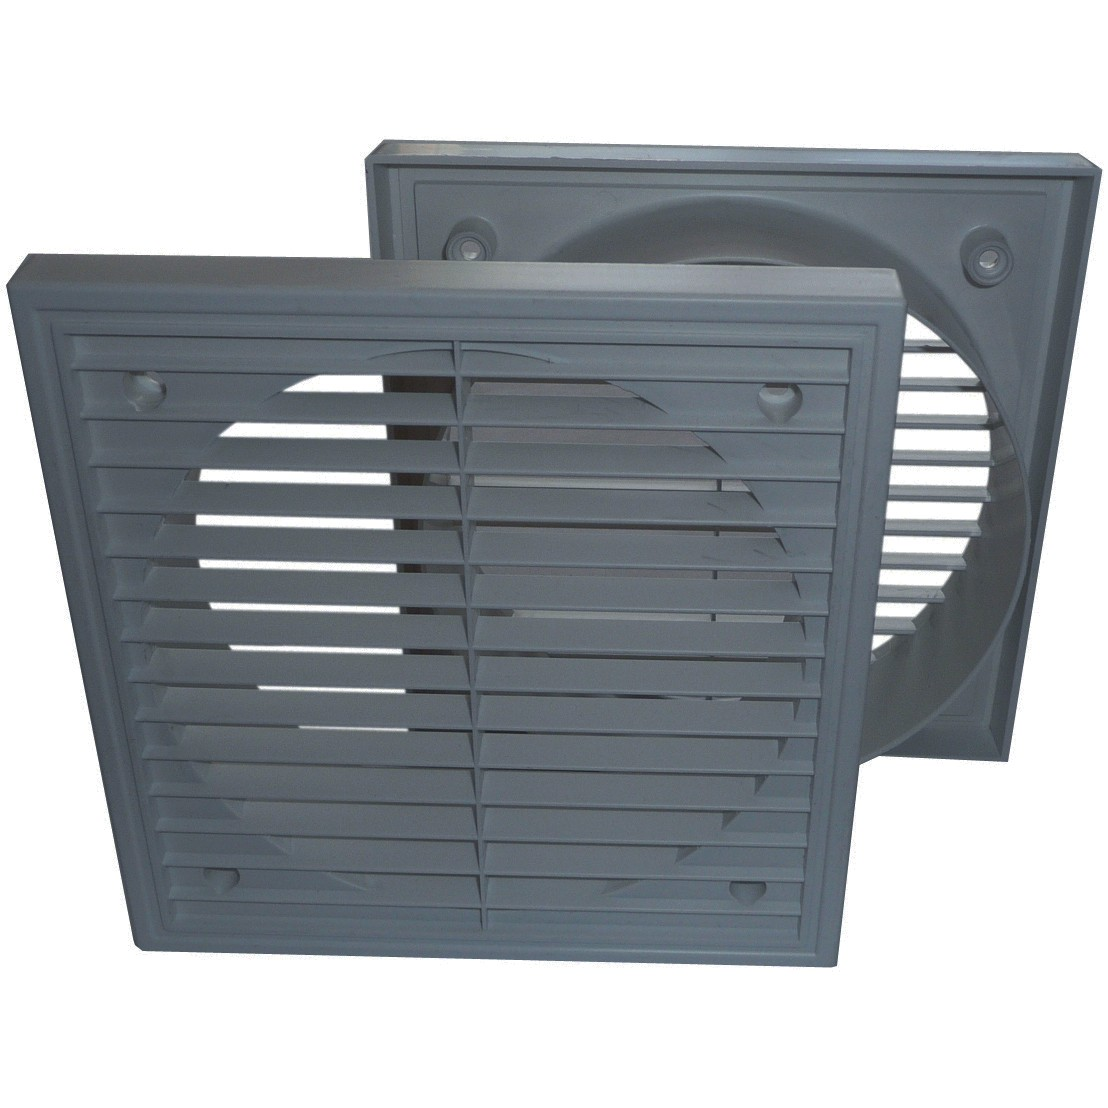 Manrose Round Ducting Pipe Fixed Grille Vent Outlet - Grey, 125mm